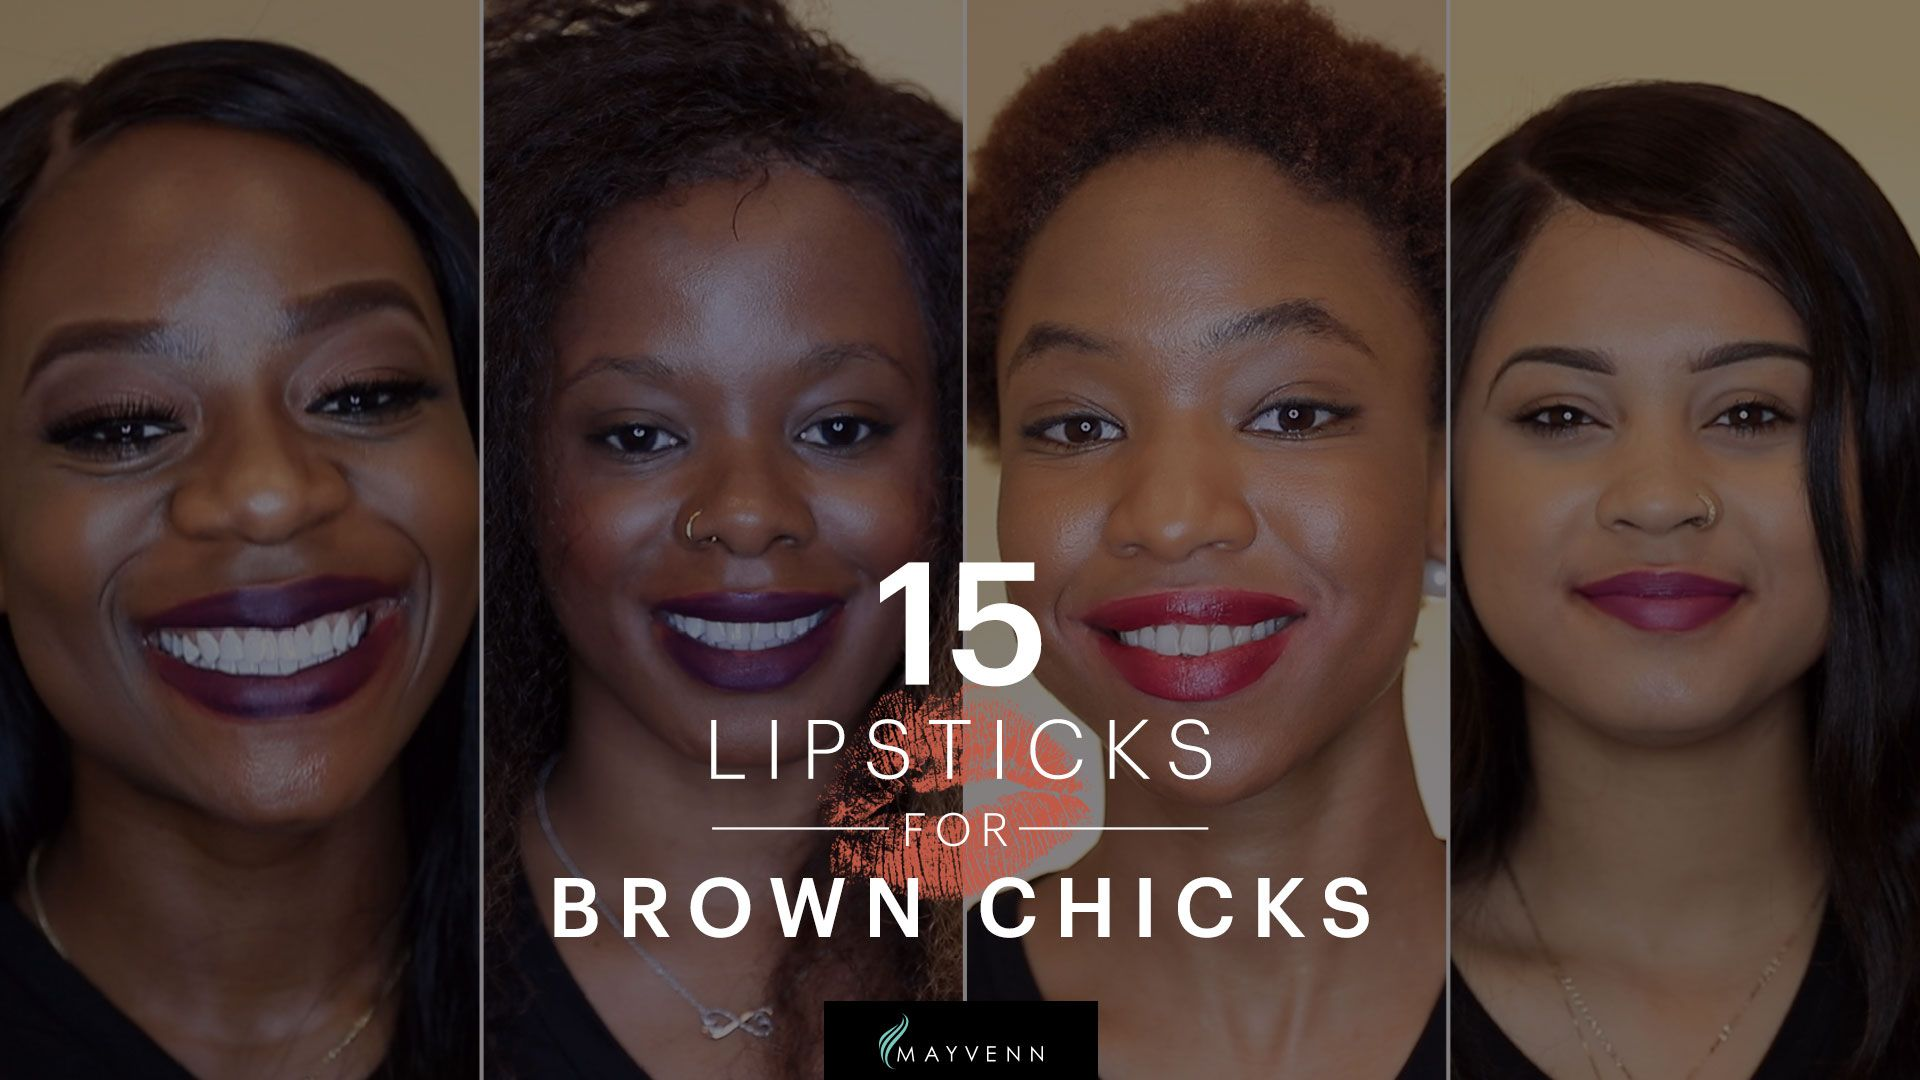 3 Purple Lipsticks For Brown Chicks | Mayvenn + Cocoa Swatches